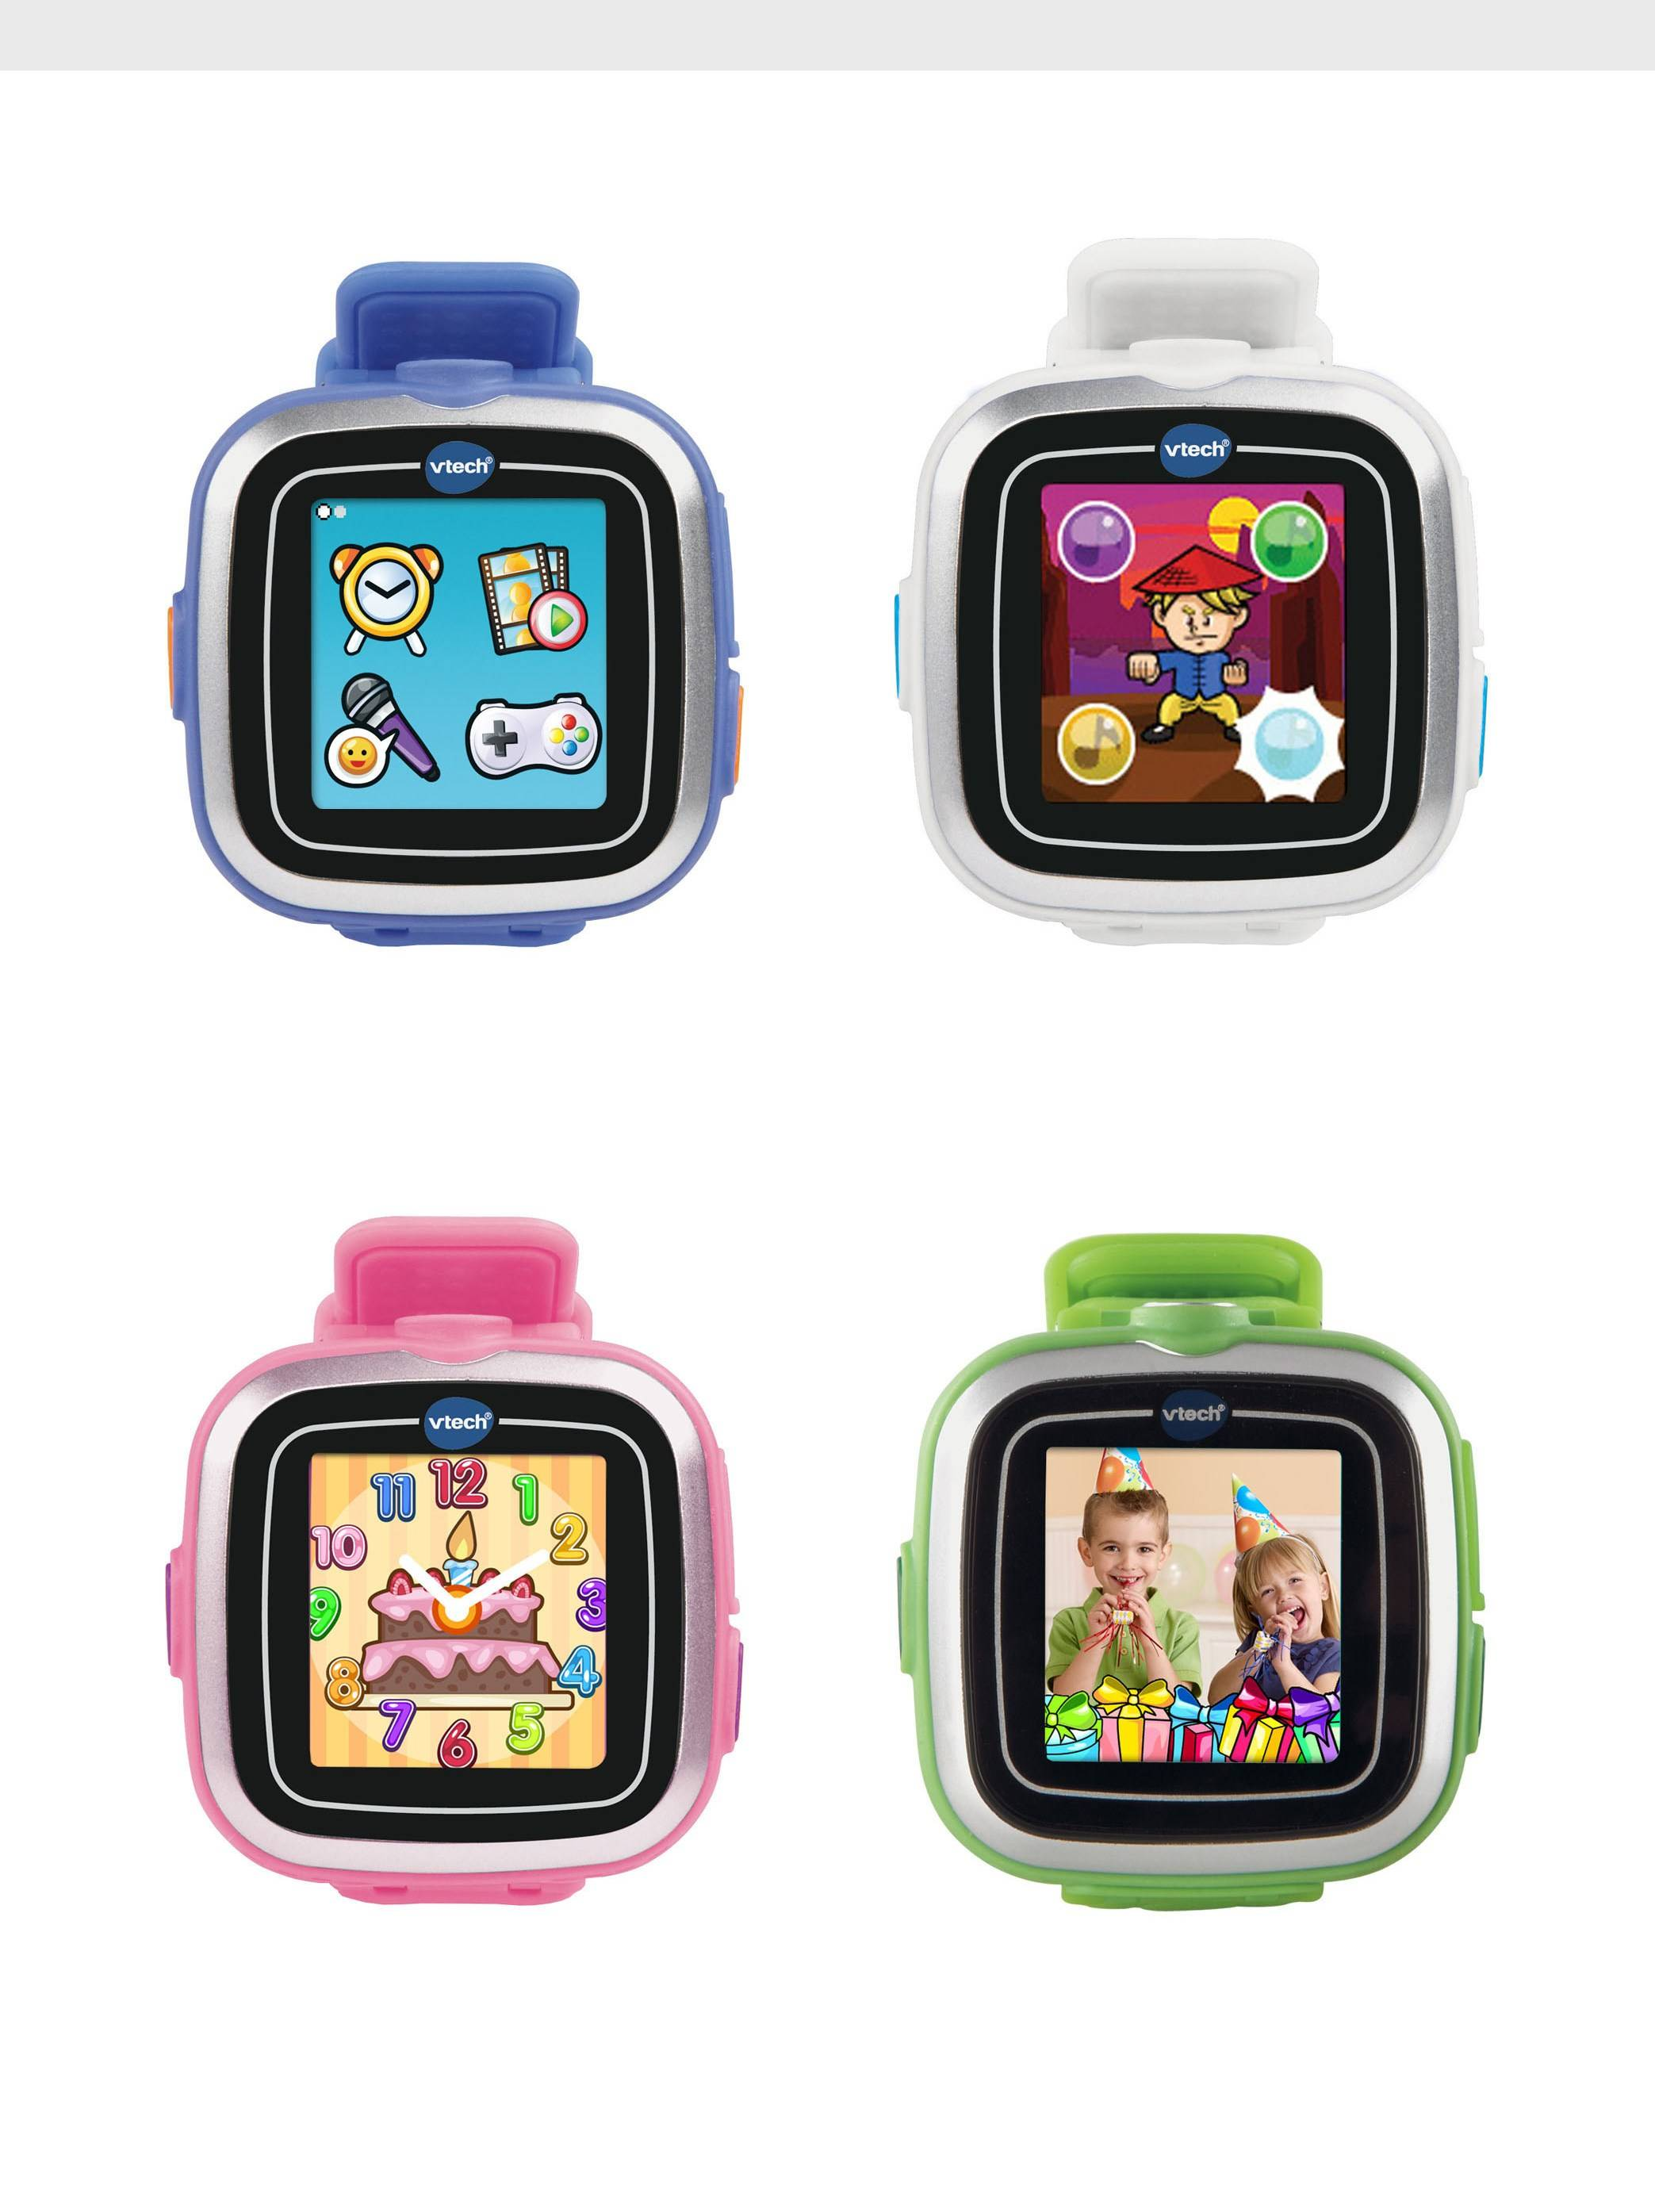 LG Electronics, VTech Holdings and Filip Technologies have all developed high-tech watches for children, undaunted by the slow progress the industry has made in pitching the devices to adults.